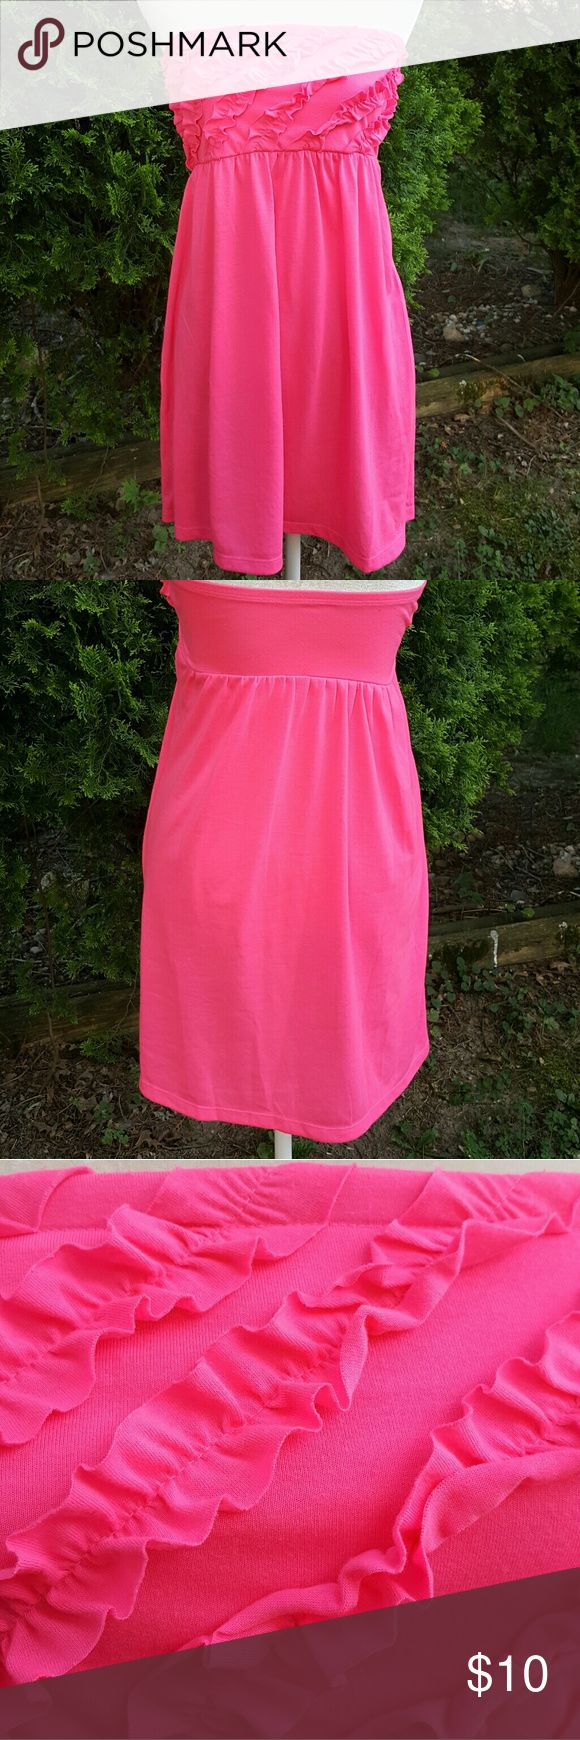 Ocean Pacific swimsuit cover-up Ocean Pacific swimsuit cover up dress -  hot pink -  size large juniors like new condition little Ruffles on the front. Ocean Pacific  Swim